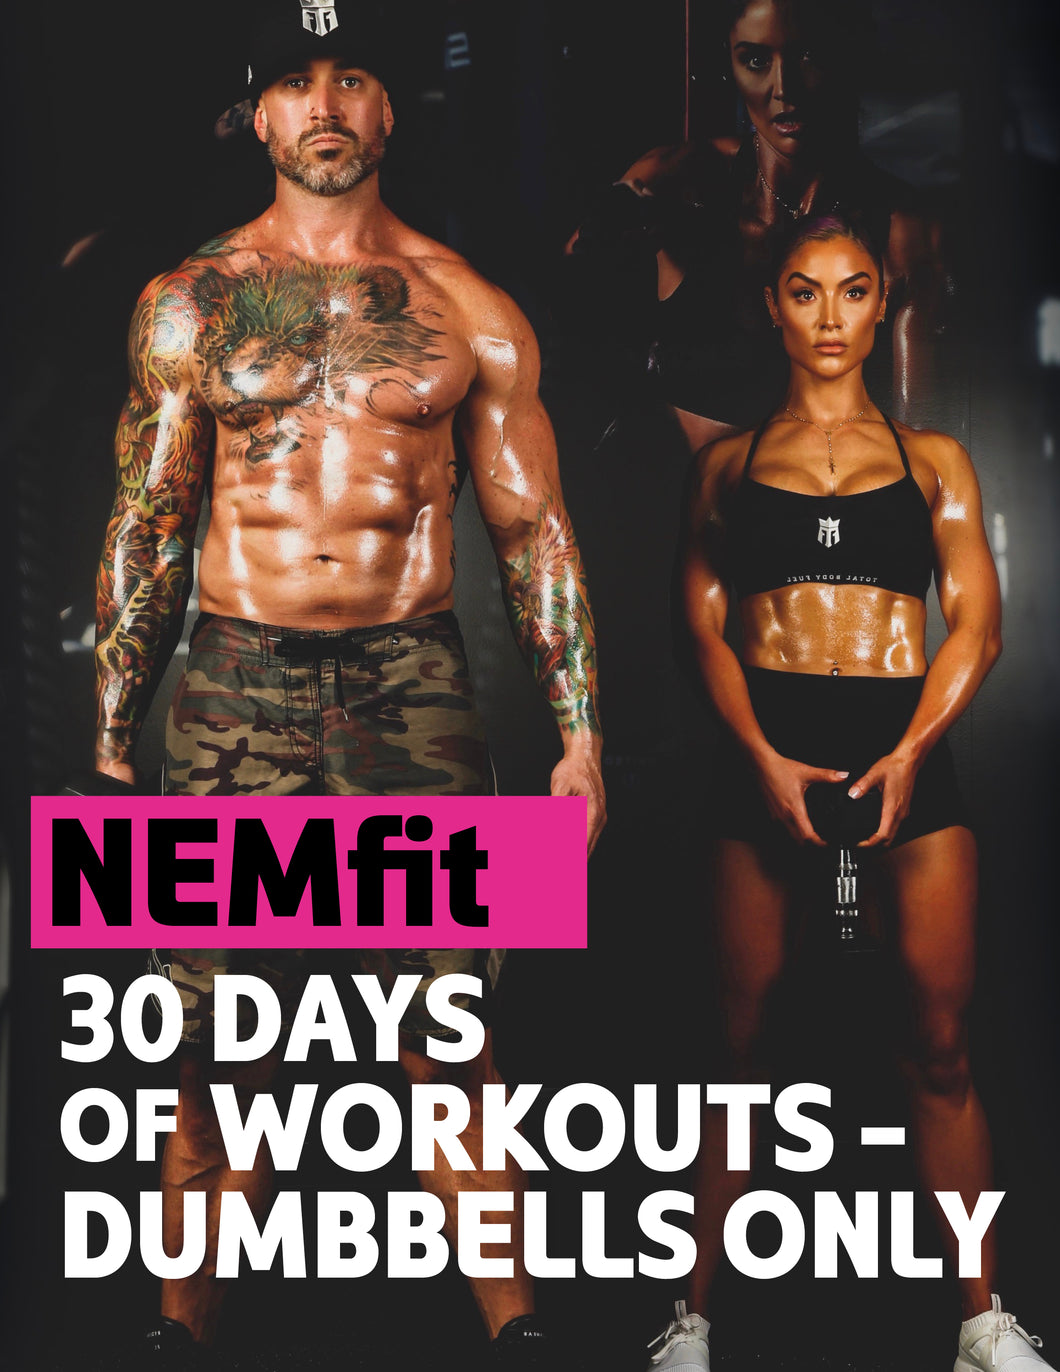 NEM FIT: 30 Days of Dumbbell Workouts